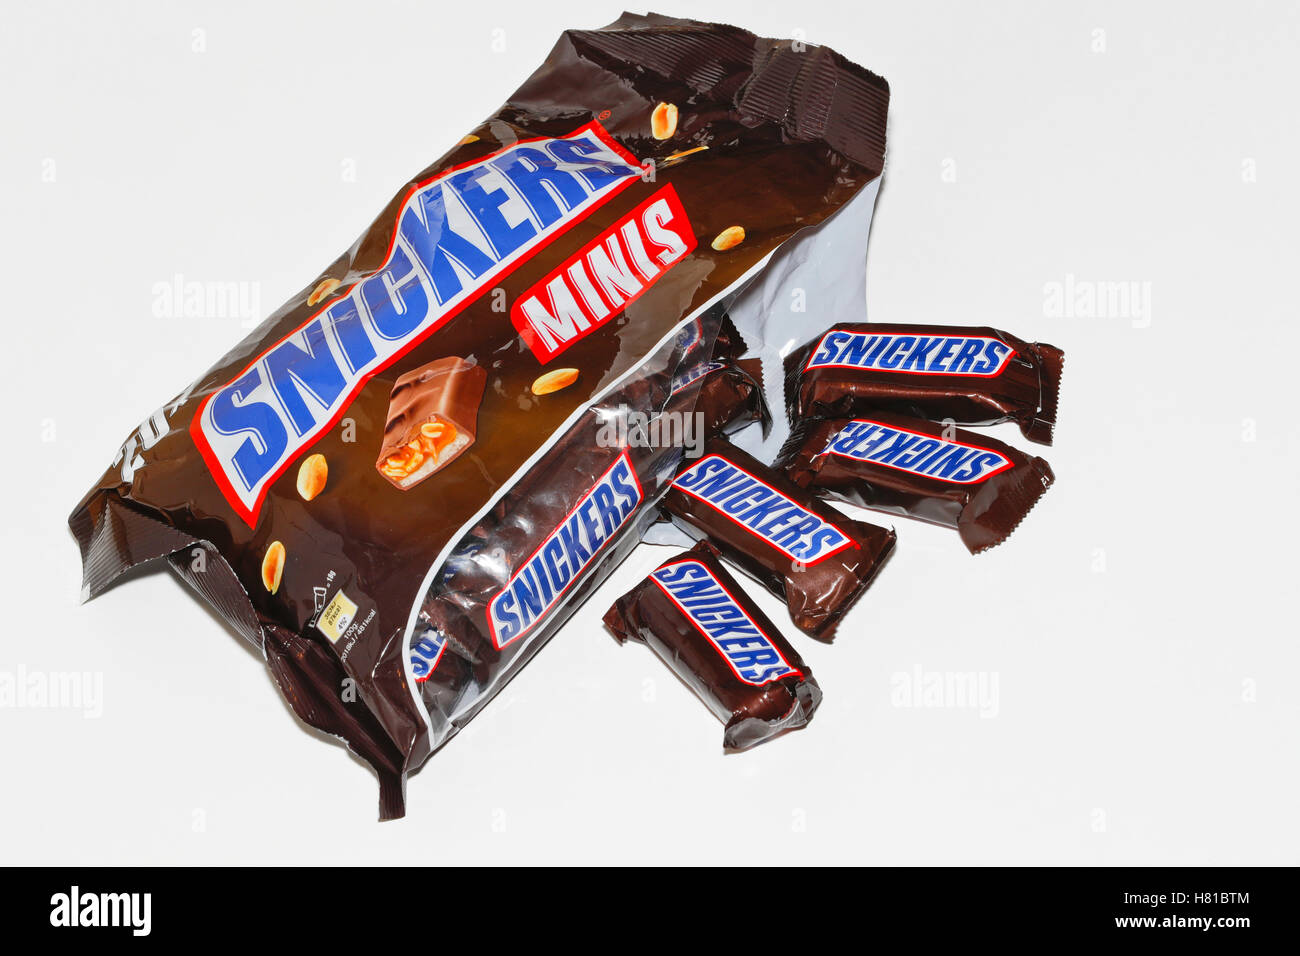 Package of mini Snickers - Stock Image